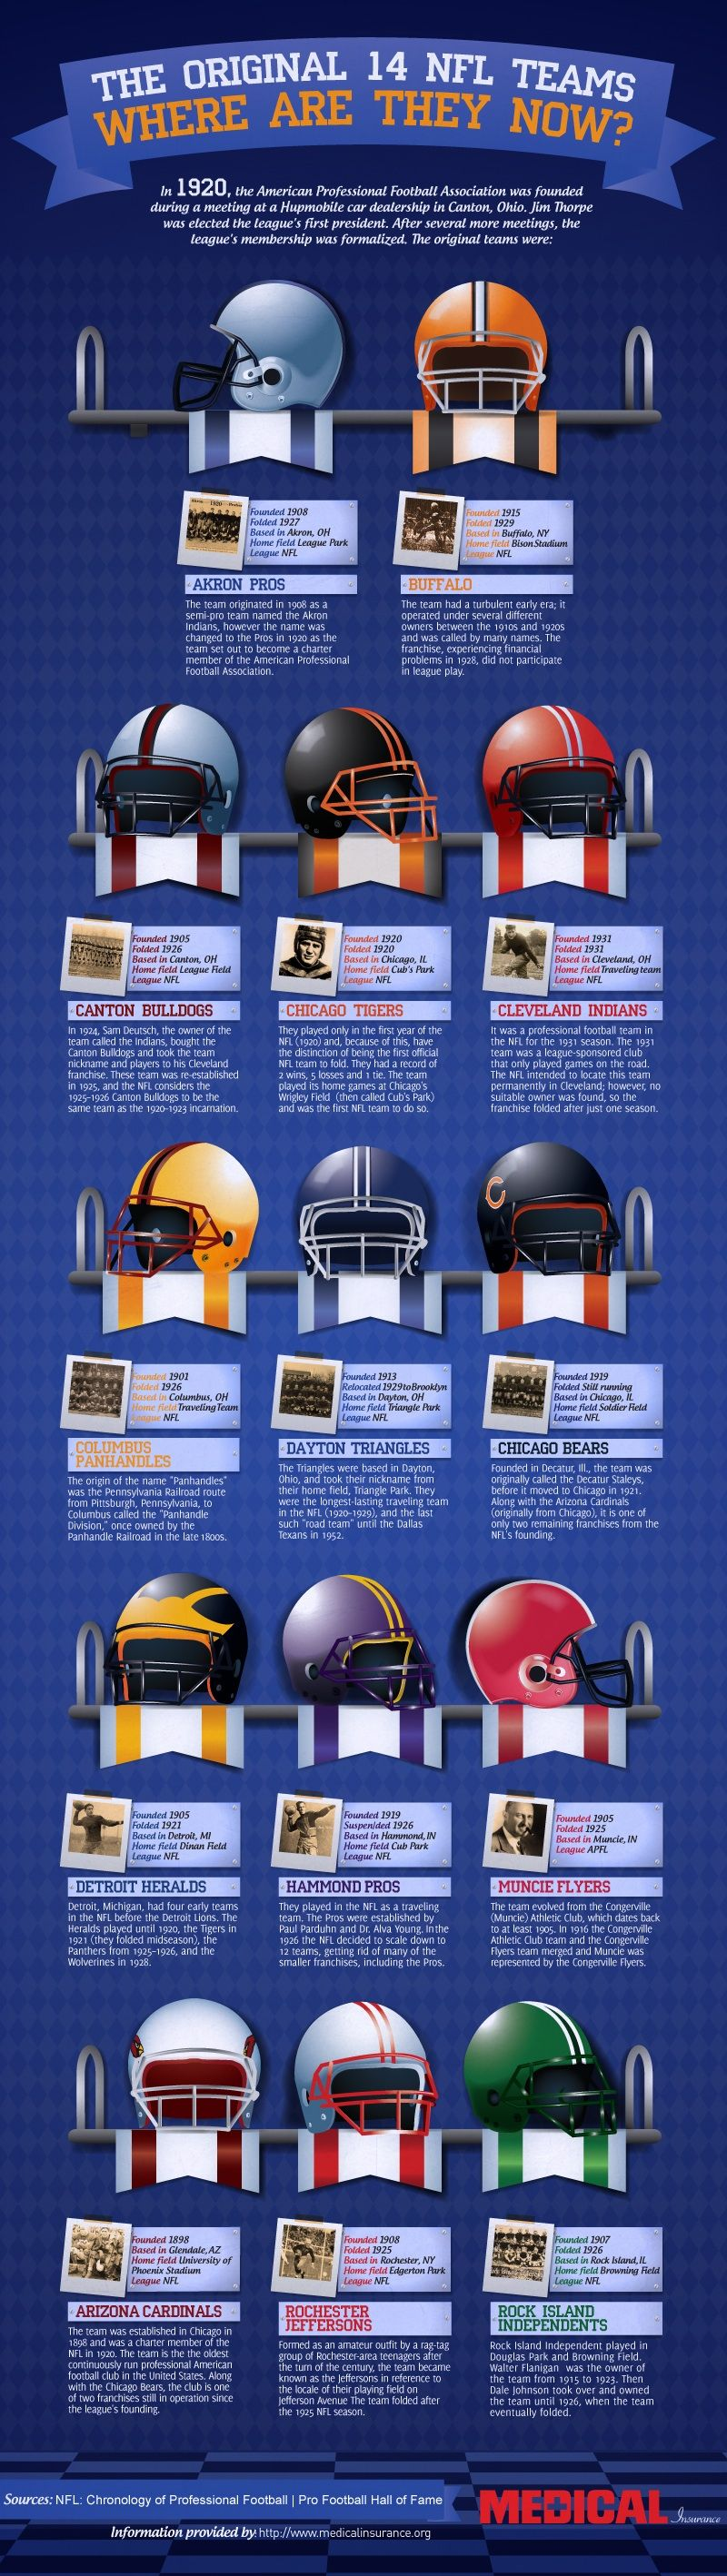 The original 14 NFL teams and where they went.